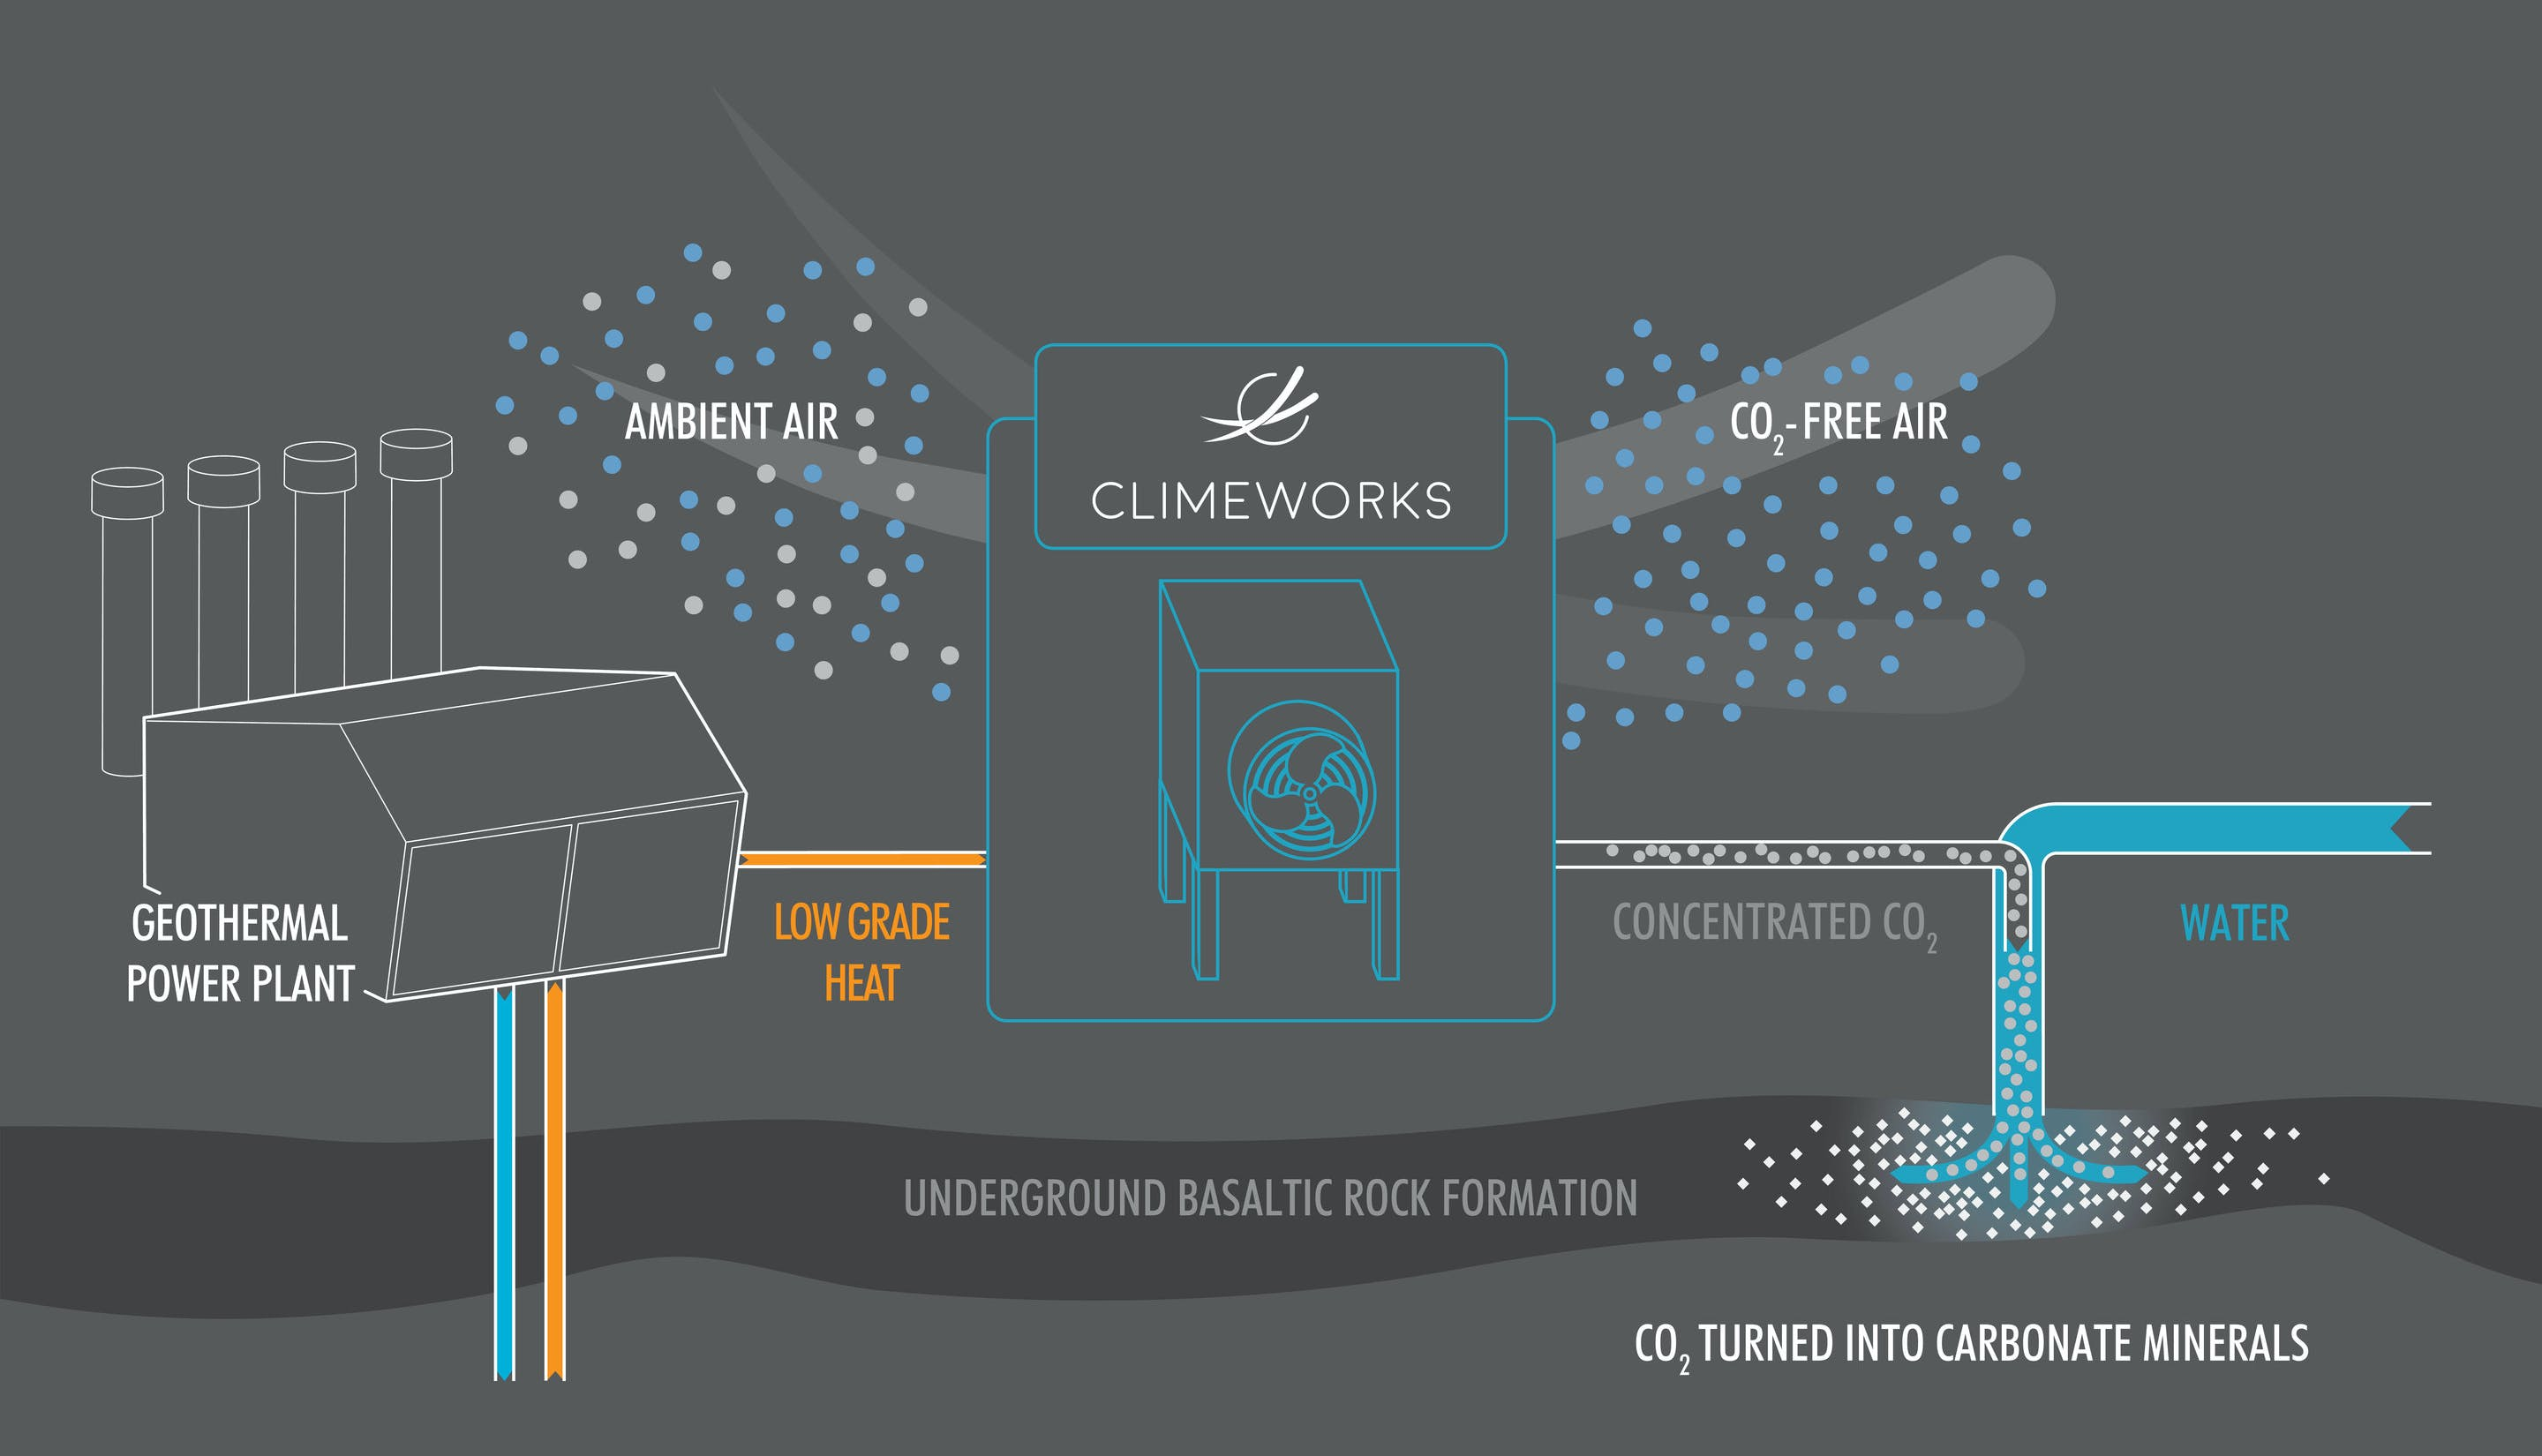 Simplified diagram of Climeworks process. A geothermal power plant supplies energy to a direct air capture unit which captures CO2 from air. The concentrated CO2 captured is then dissolved with water and injected into the bedrock (Carbfix method).